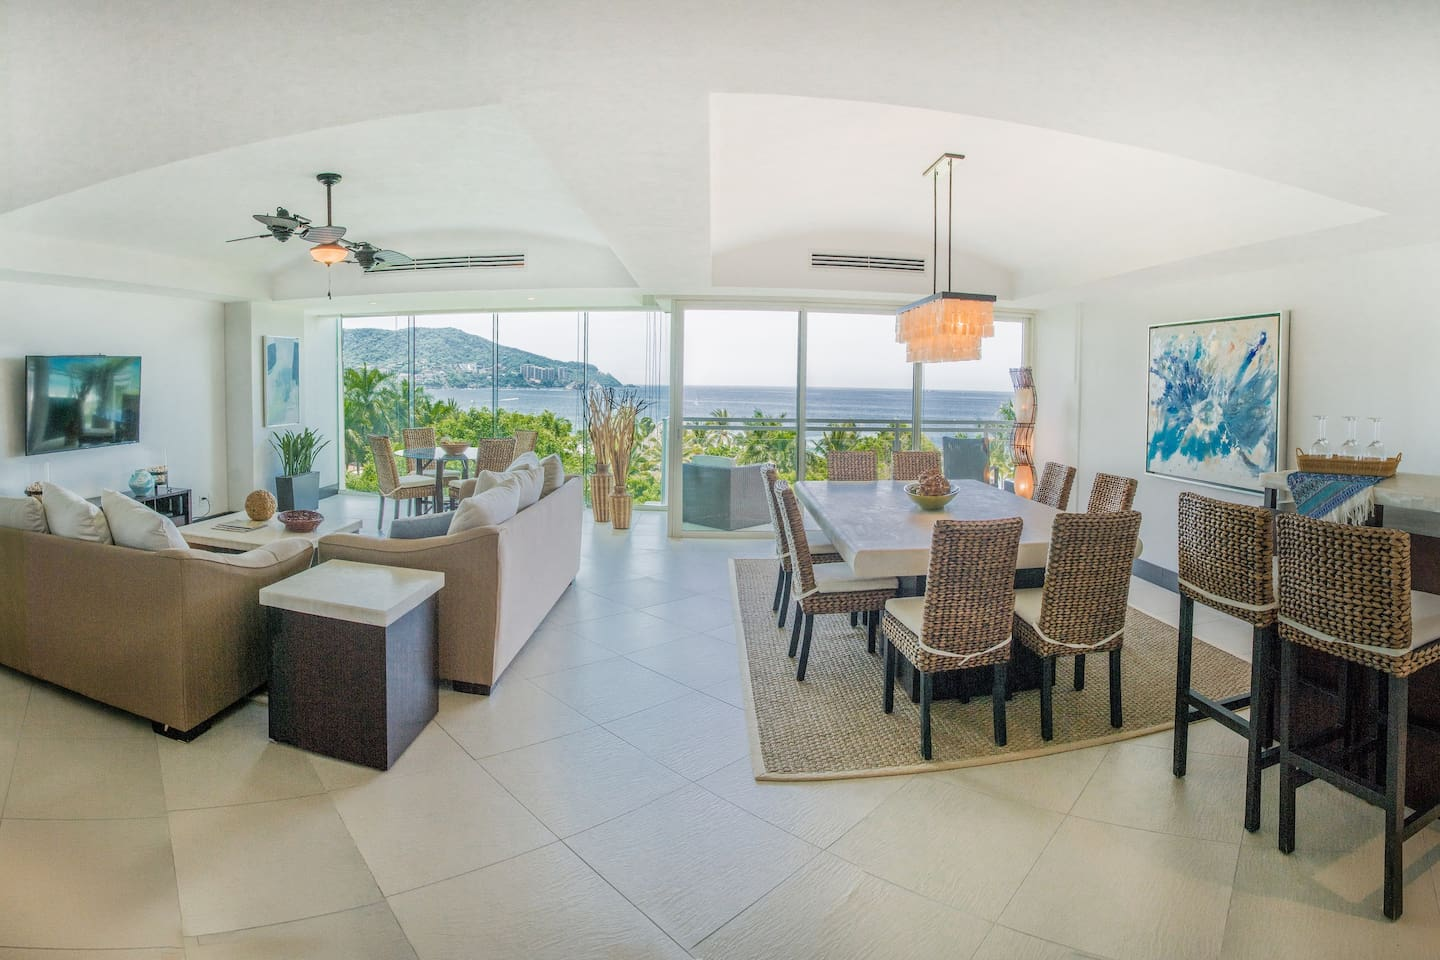 Living Room and Dining Room  - Large Balcony, Ocean Views, Air Conditioning, Ceiling Fan, Smart TV, Cable